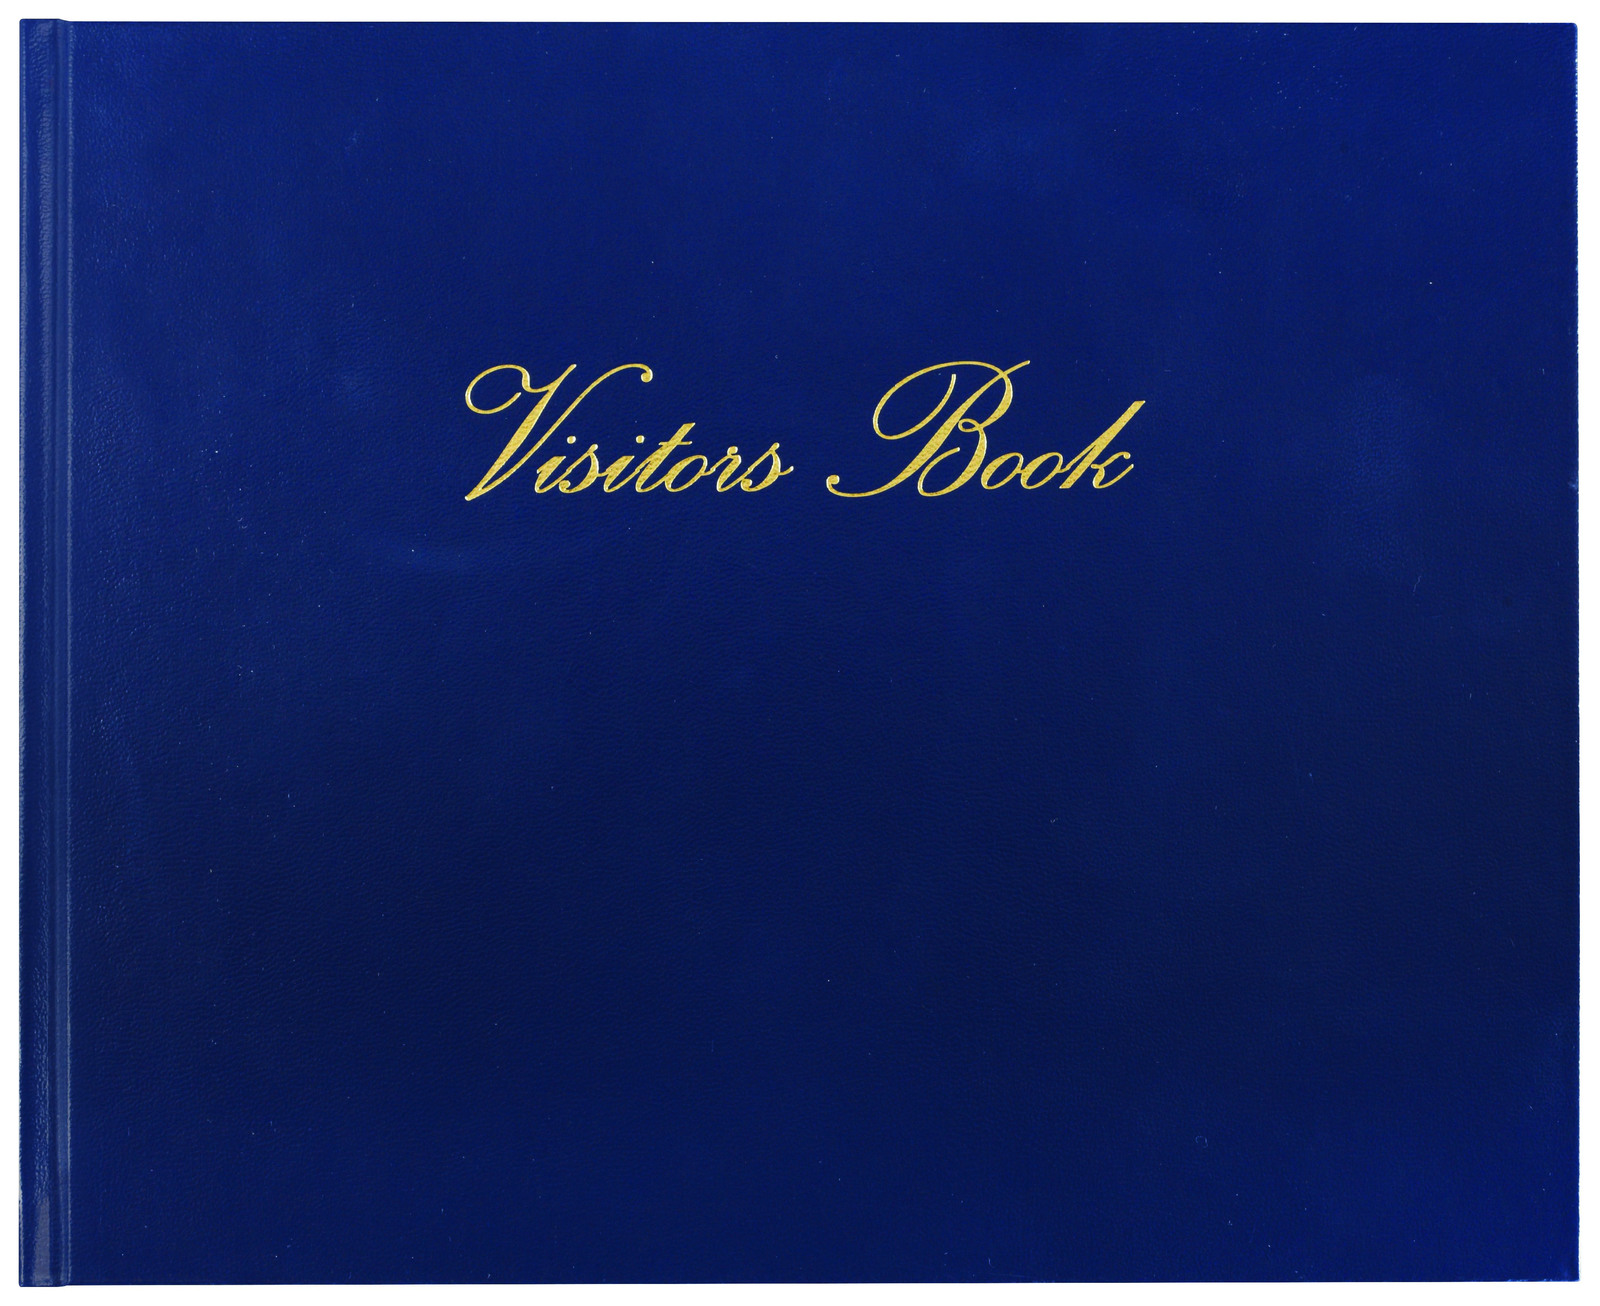 Collins Visitors Book image